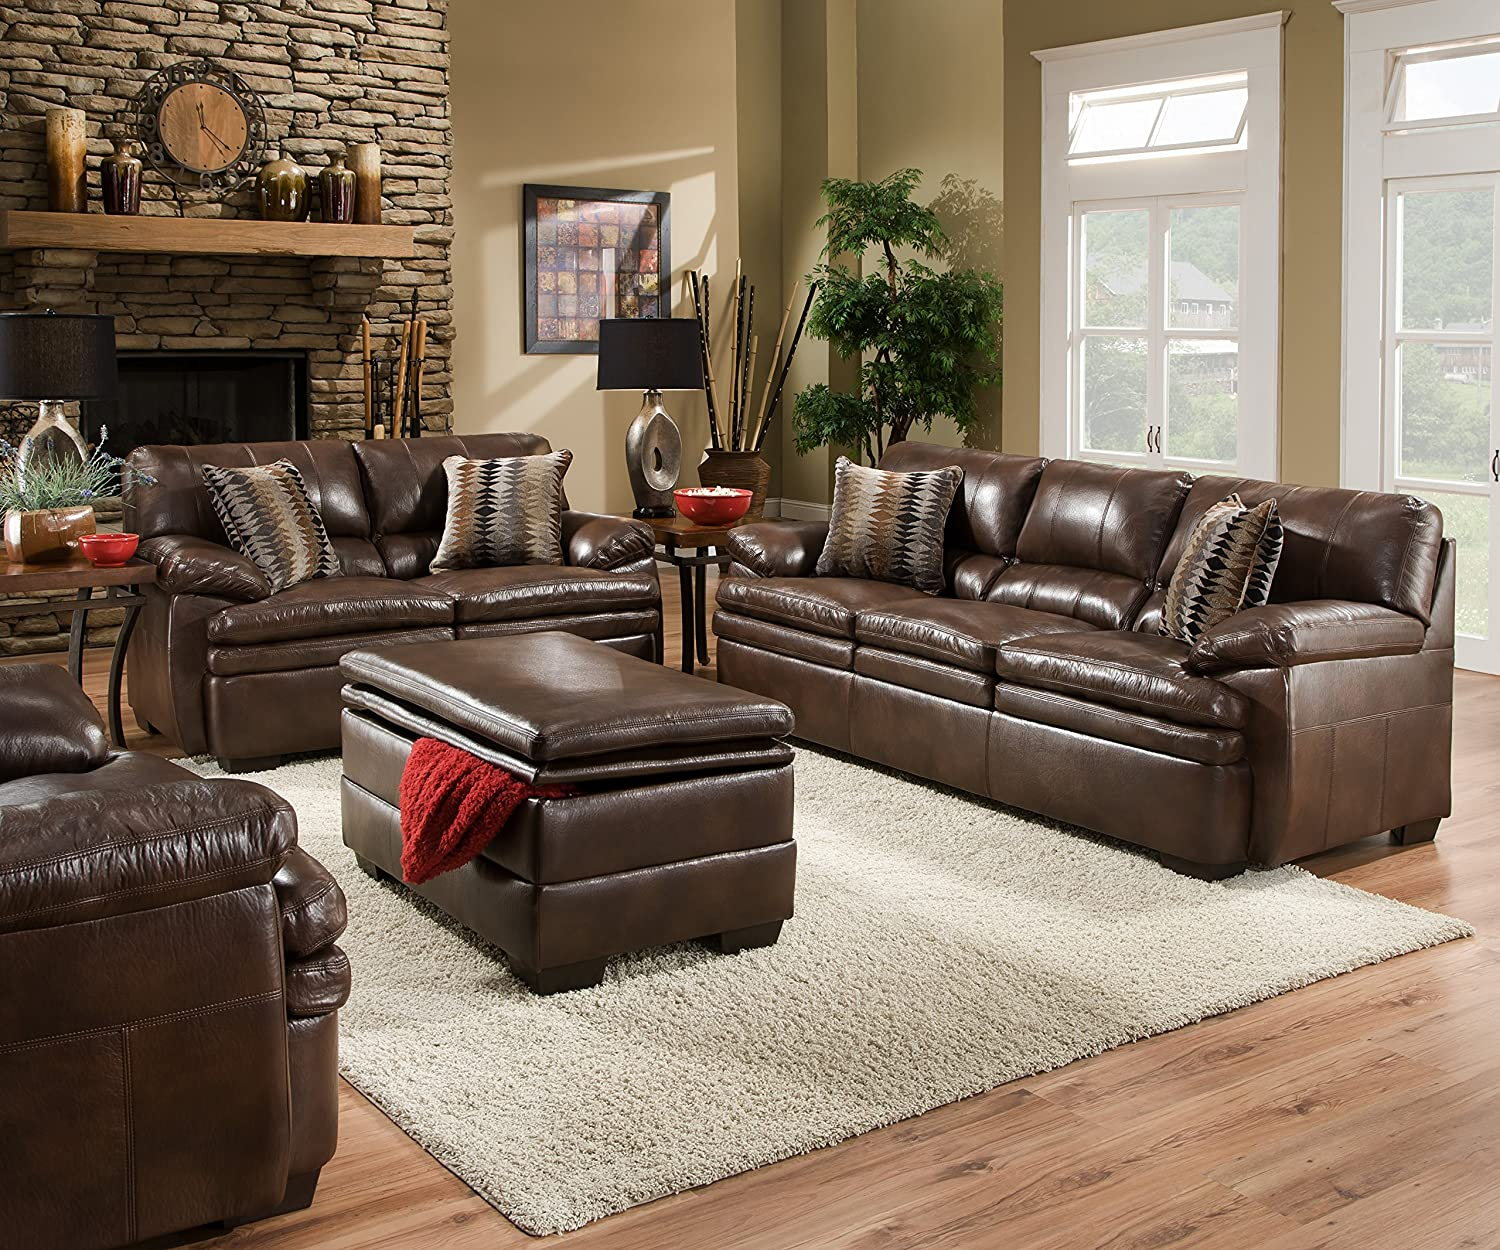 amazoncom simmons upholstery editor bonded leather sofa kitchen dining - Leather Living Room Furniture